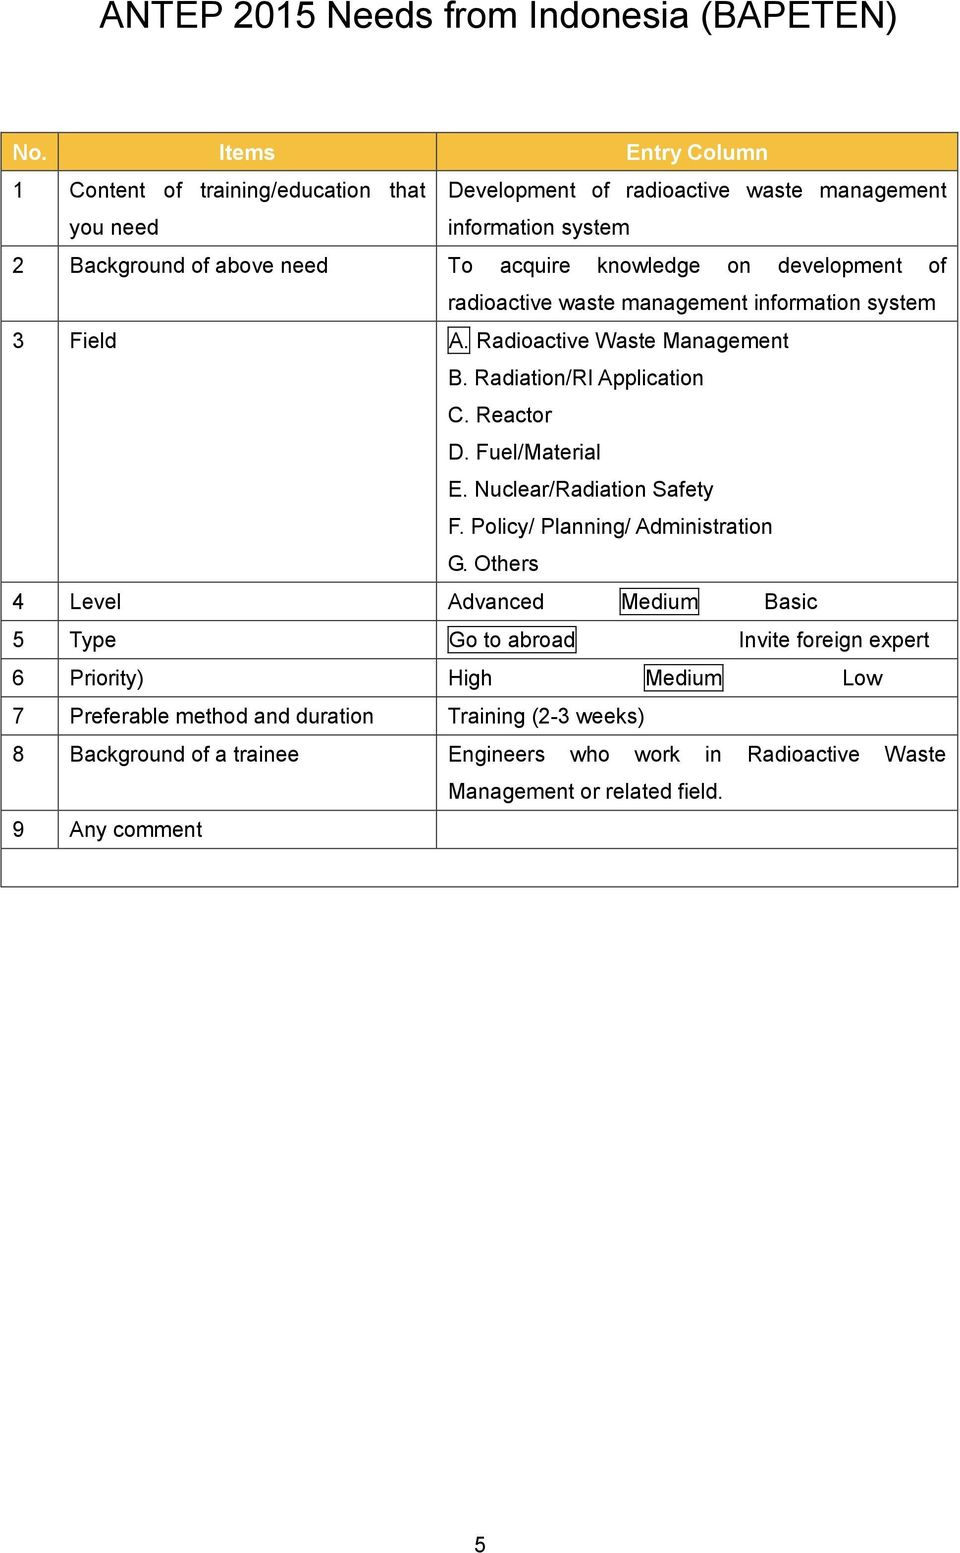 radioactive waste management information system 6 Priority) High Medium Low 7 Preferable method and duration